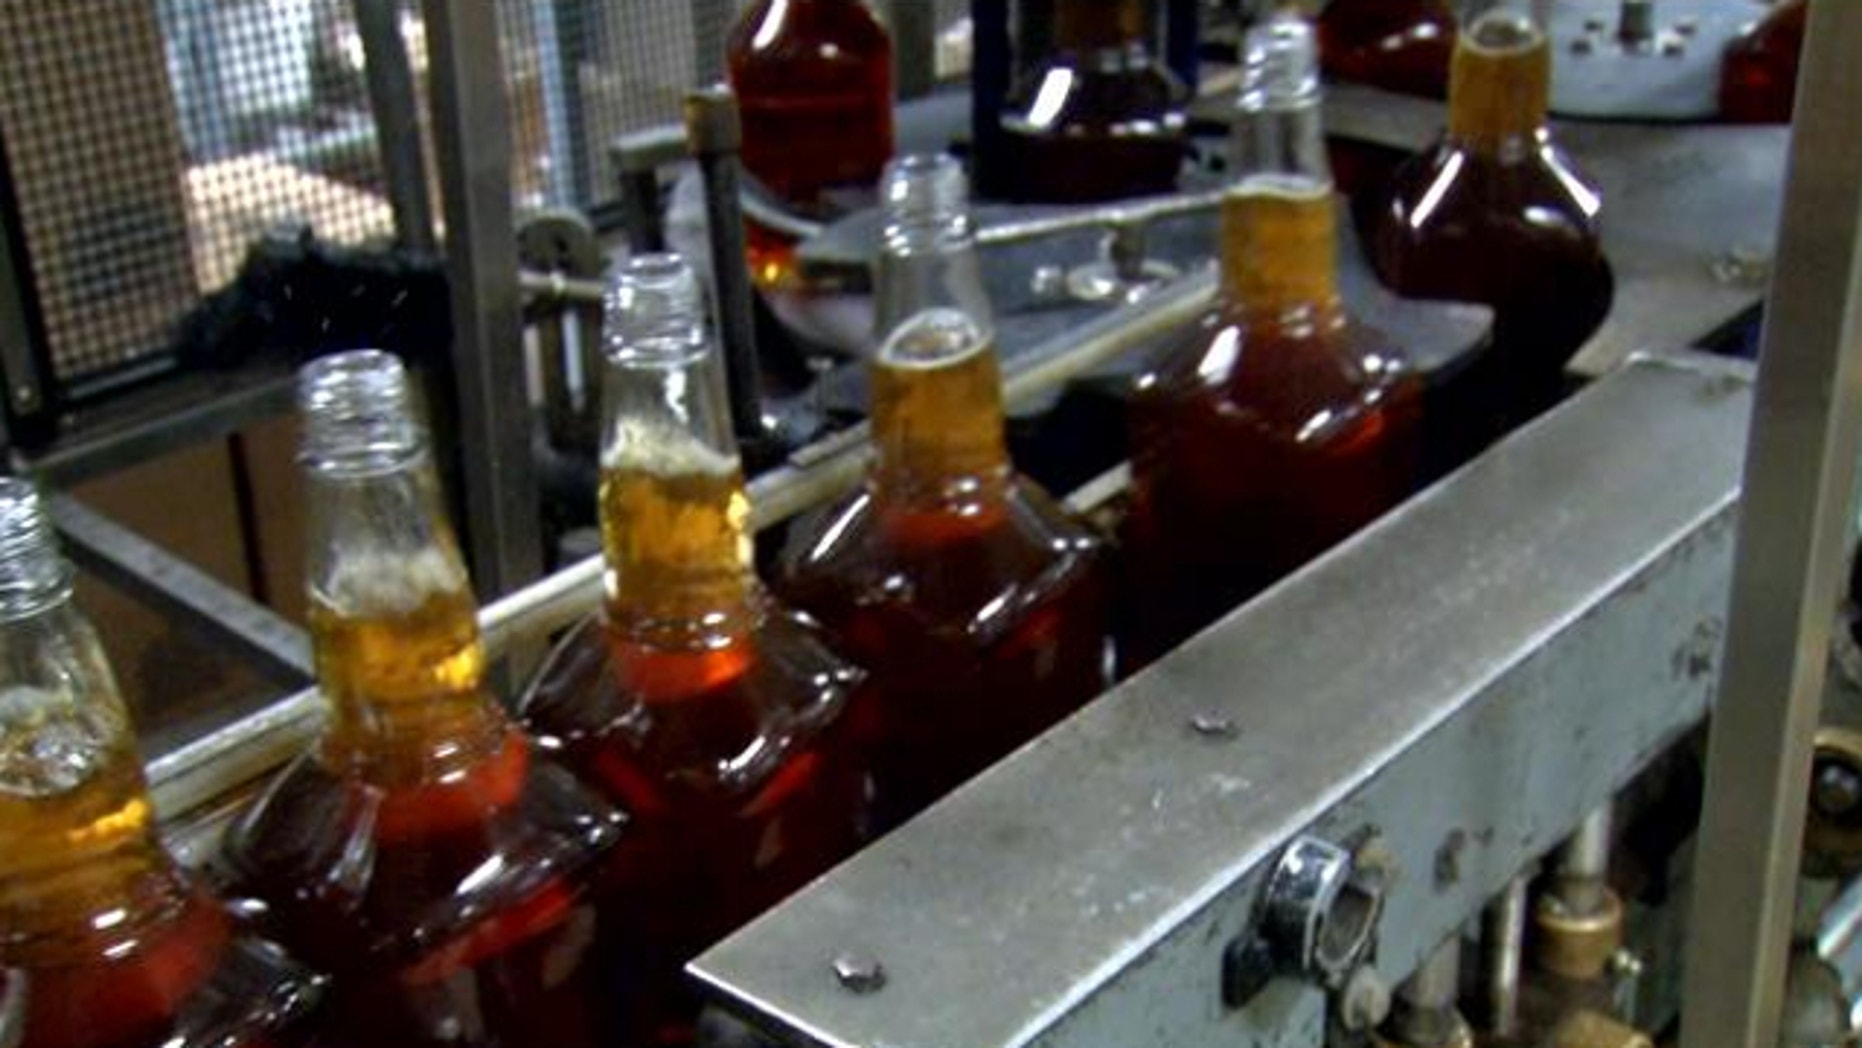 FILE: More than $25,000 worth of Pappy Van Winkle bourbon was swiped from a secure area at Buffalo Trace Distillery in Frankfort, Ky.